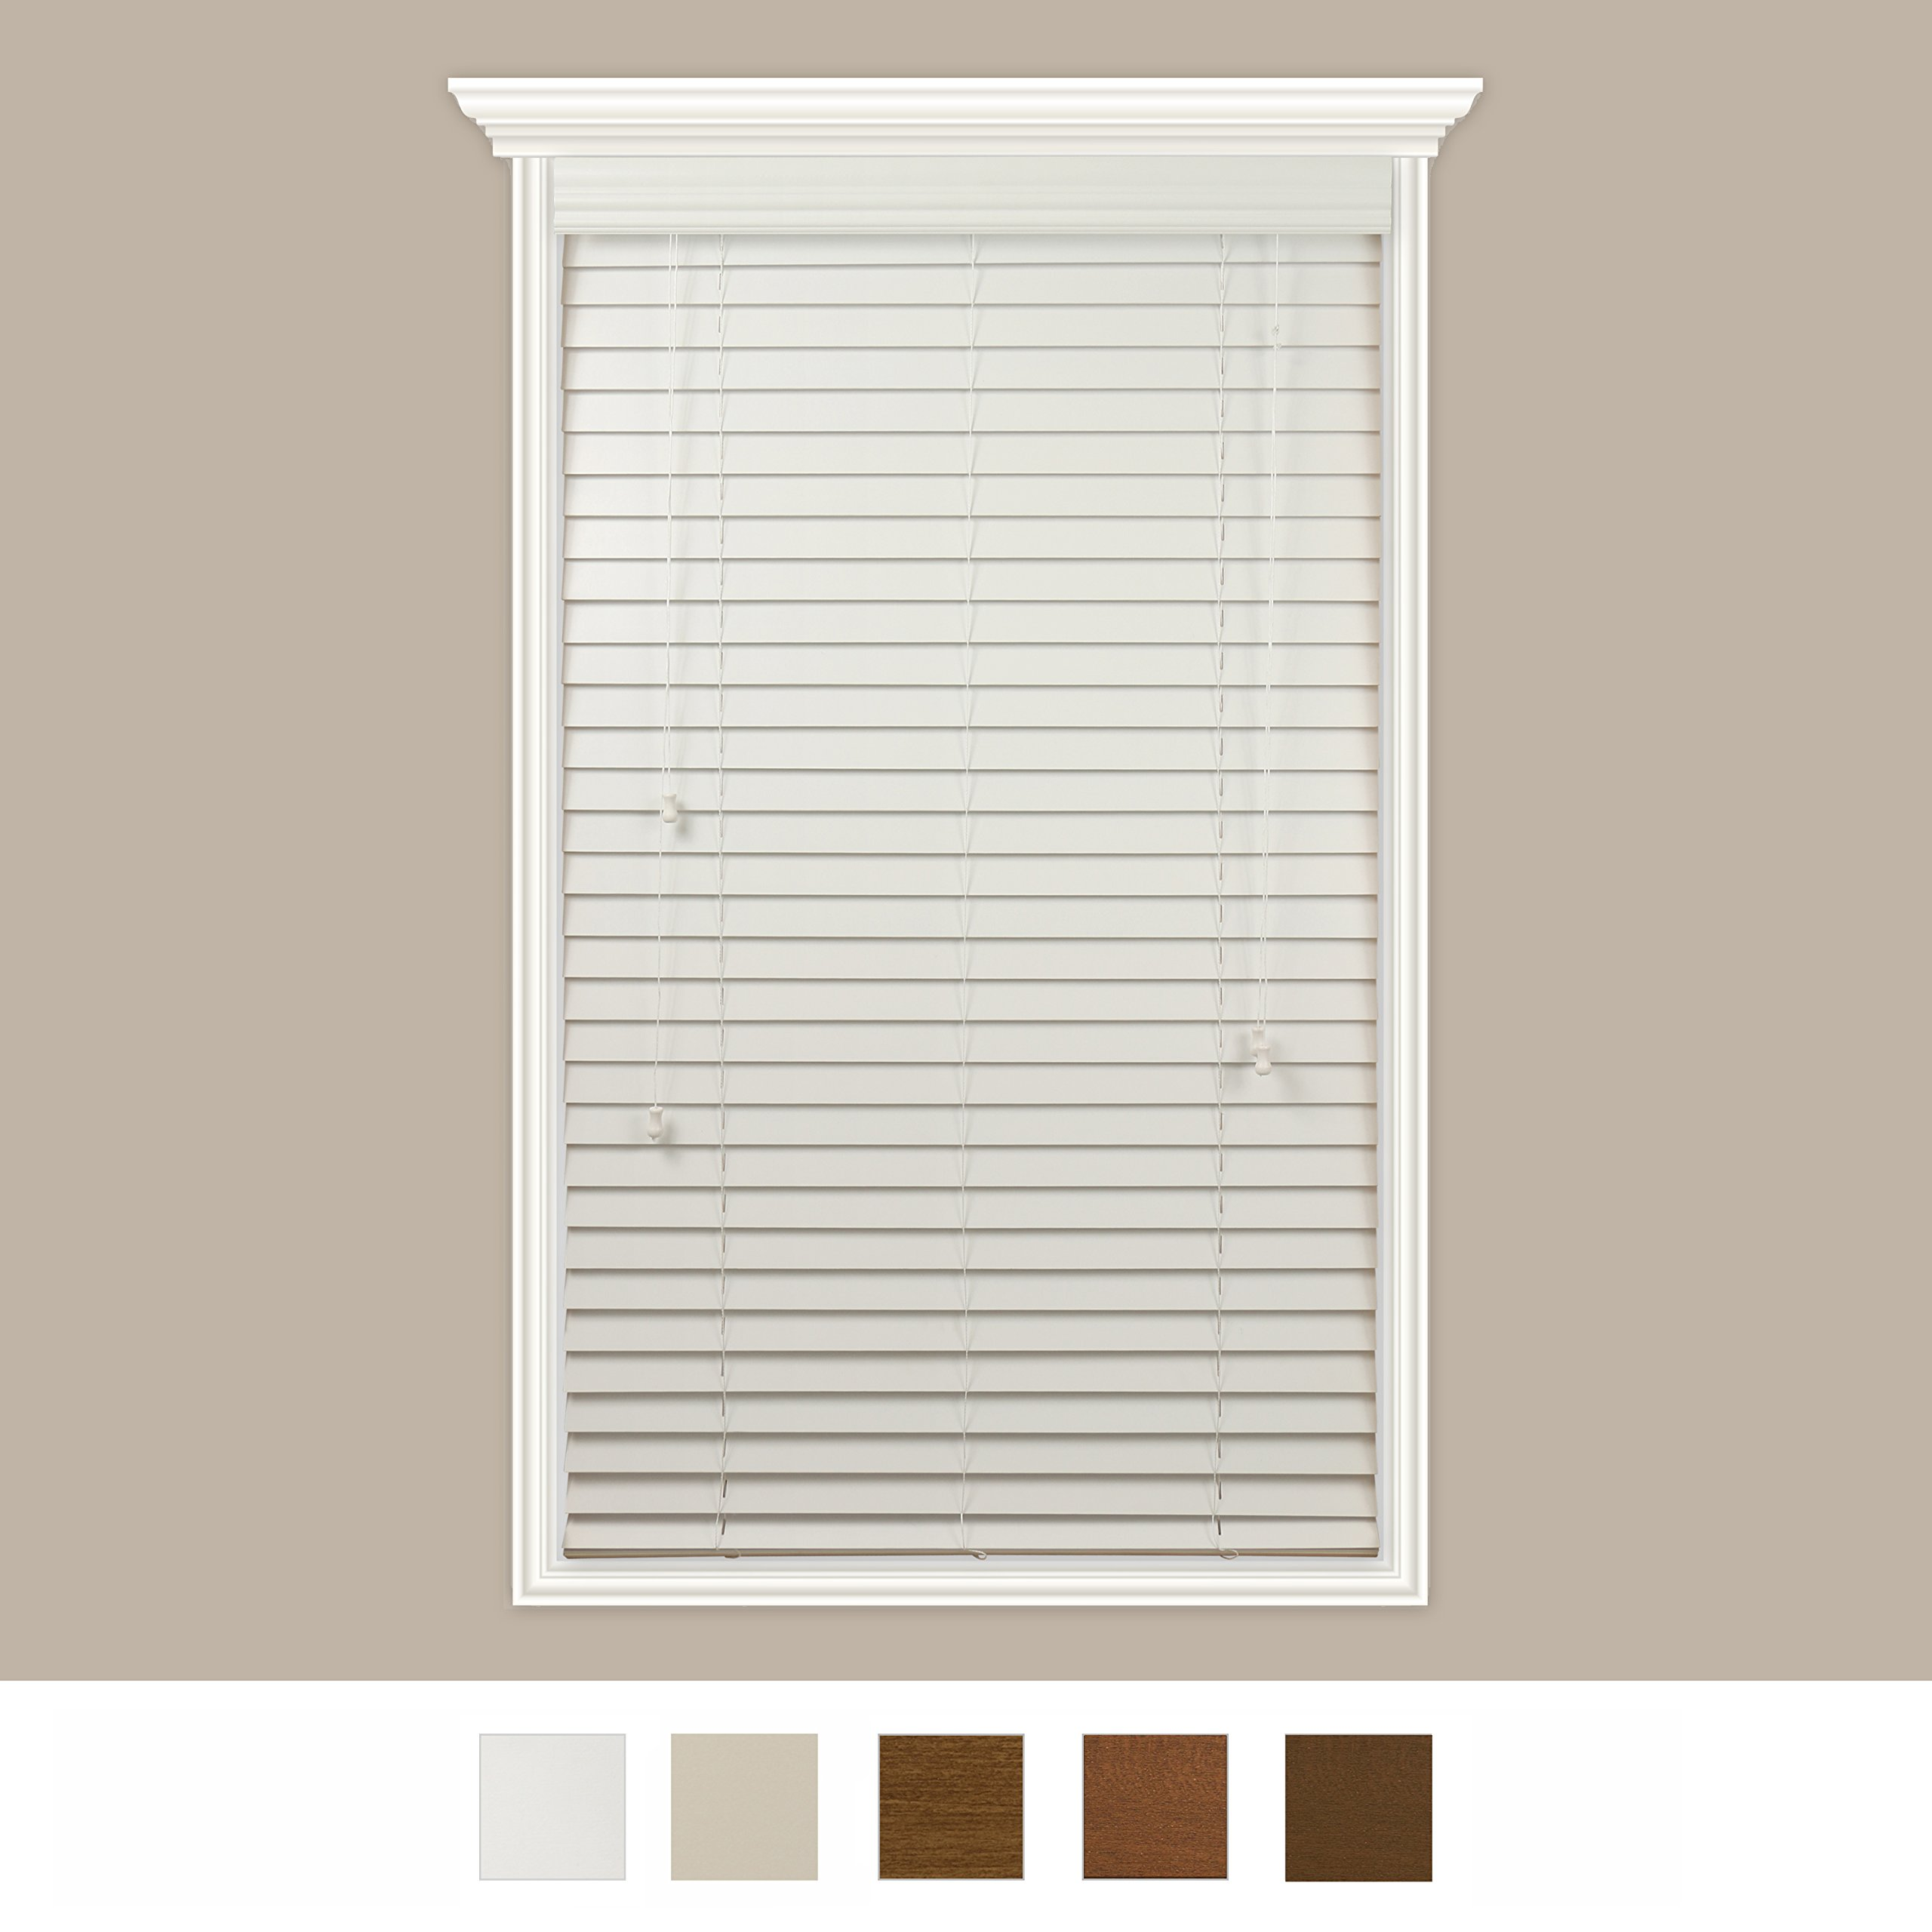 Custom-Made Real Wood Horizontal Window Blinds With Easy Inside Mount - 22'' x 36'' - 2'' Wooden Slats - Premium Quality Basswood - Pure White - By Luxr Blinds